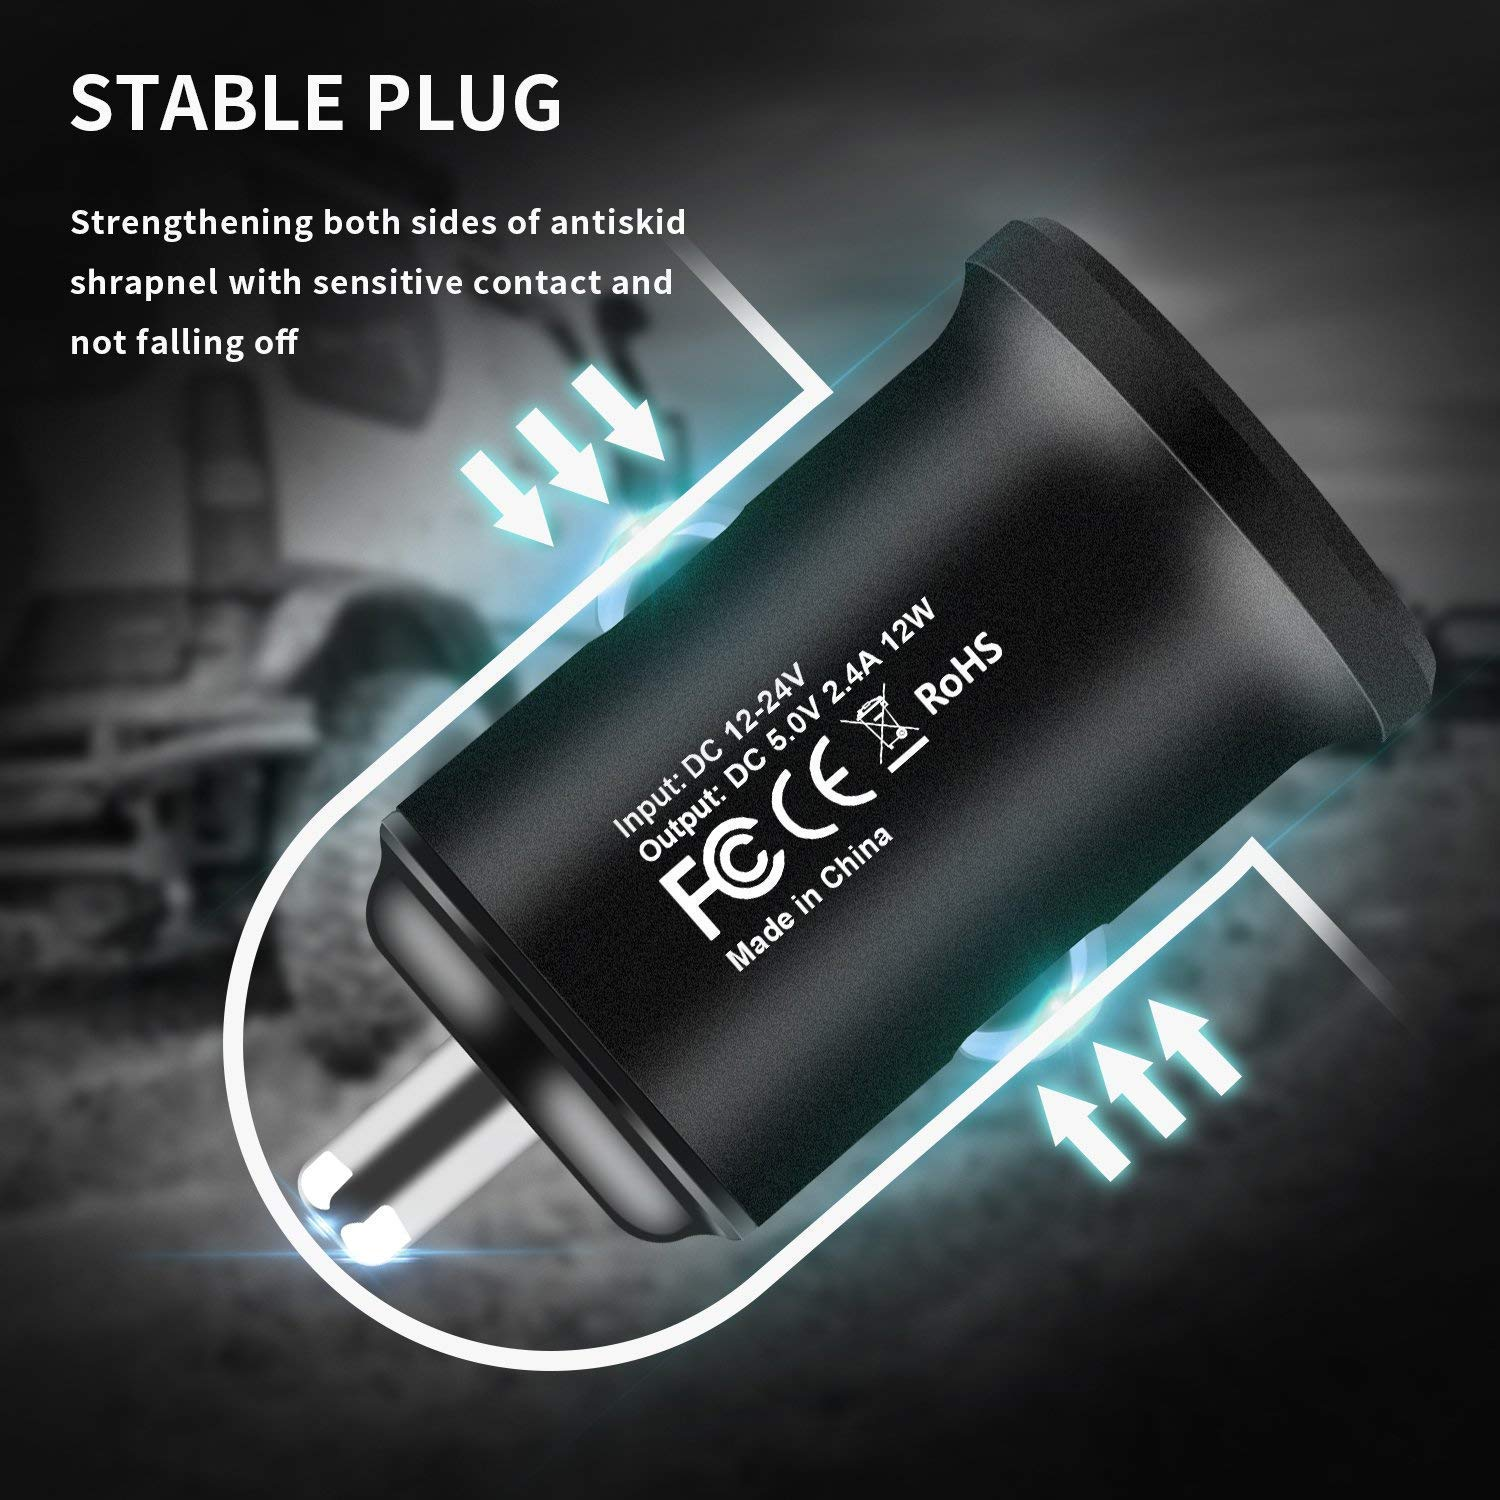 HEIRBLS Phone Car Charger Pad 24W//4.8A Rapid Dual Port USB Car Charger Adapter with LED Indicator Light and 3FT USB Cable Charging Cord for Phone XS X 8 7 Plus 6S 6 SE 5S 5 Black Blue